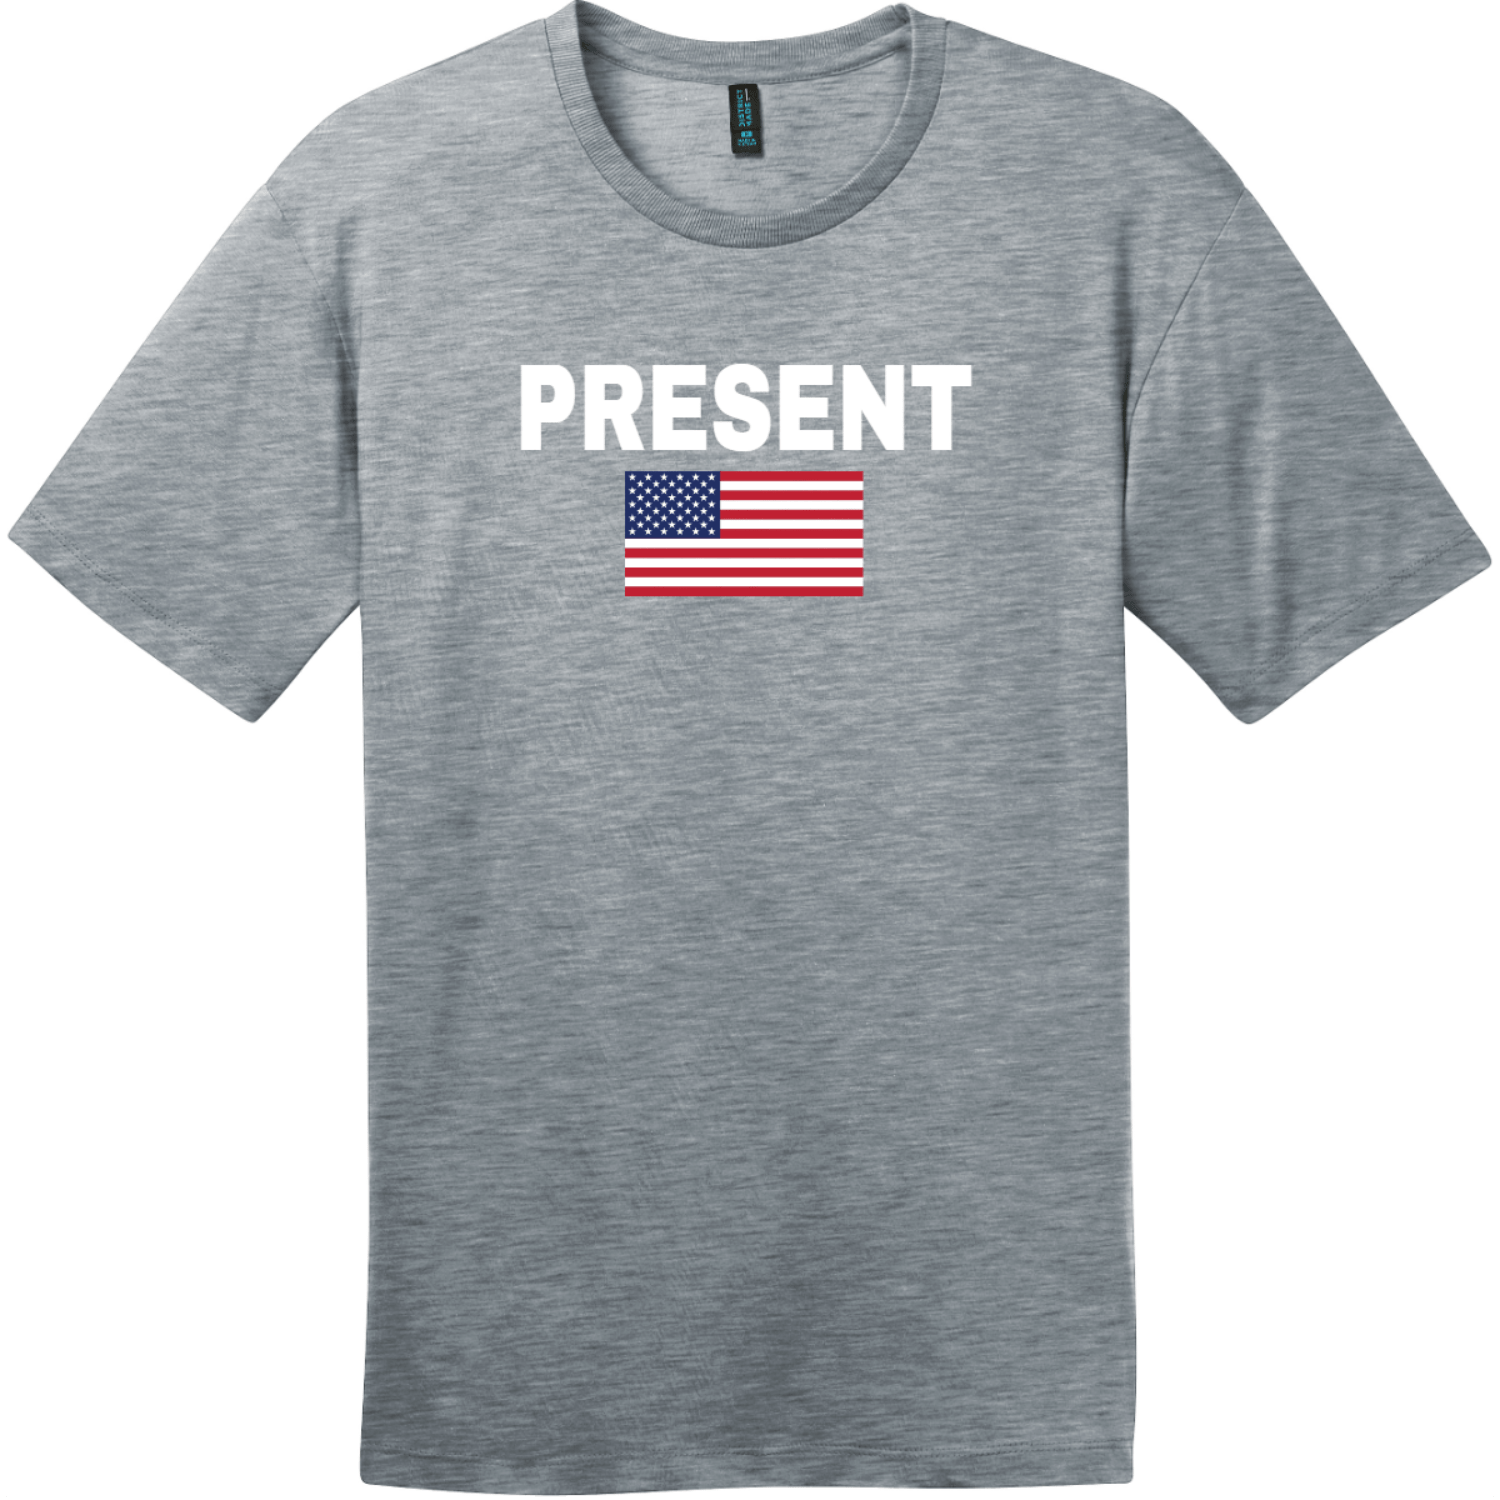 Present Vote American Flag T-Shirt Heathered Steel District Perfect Weight Tee DT104